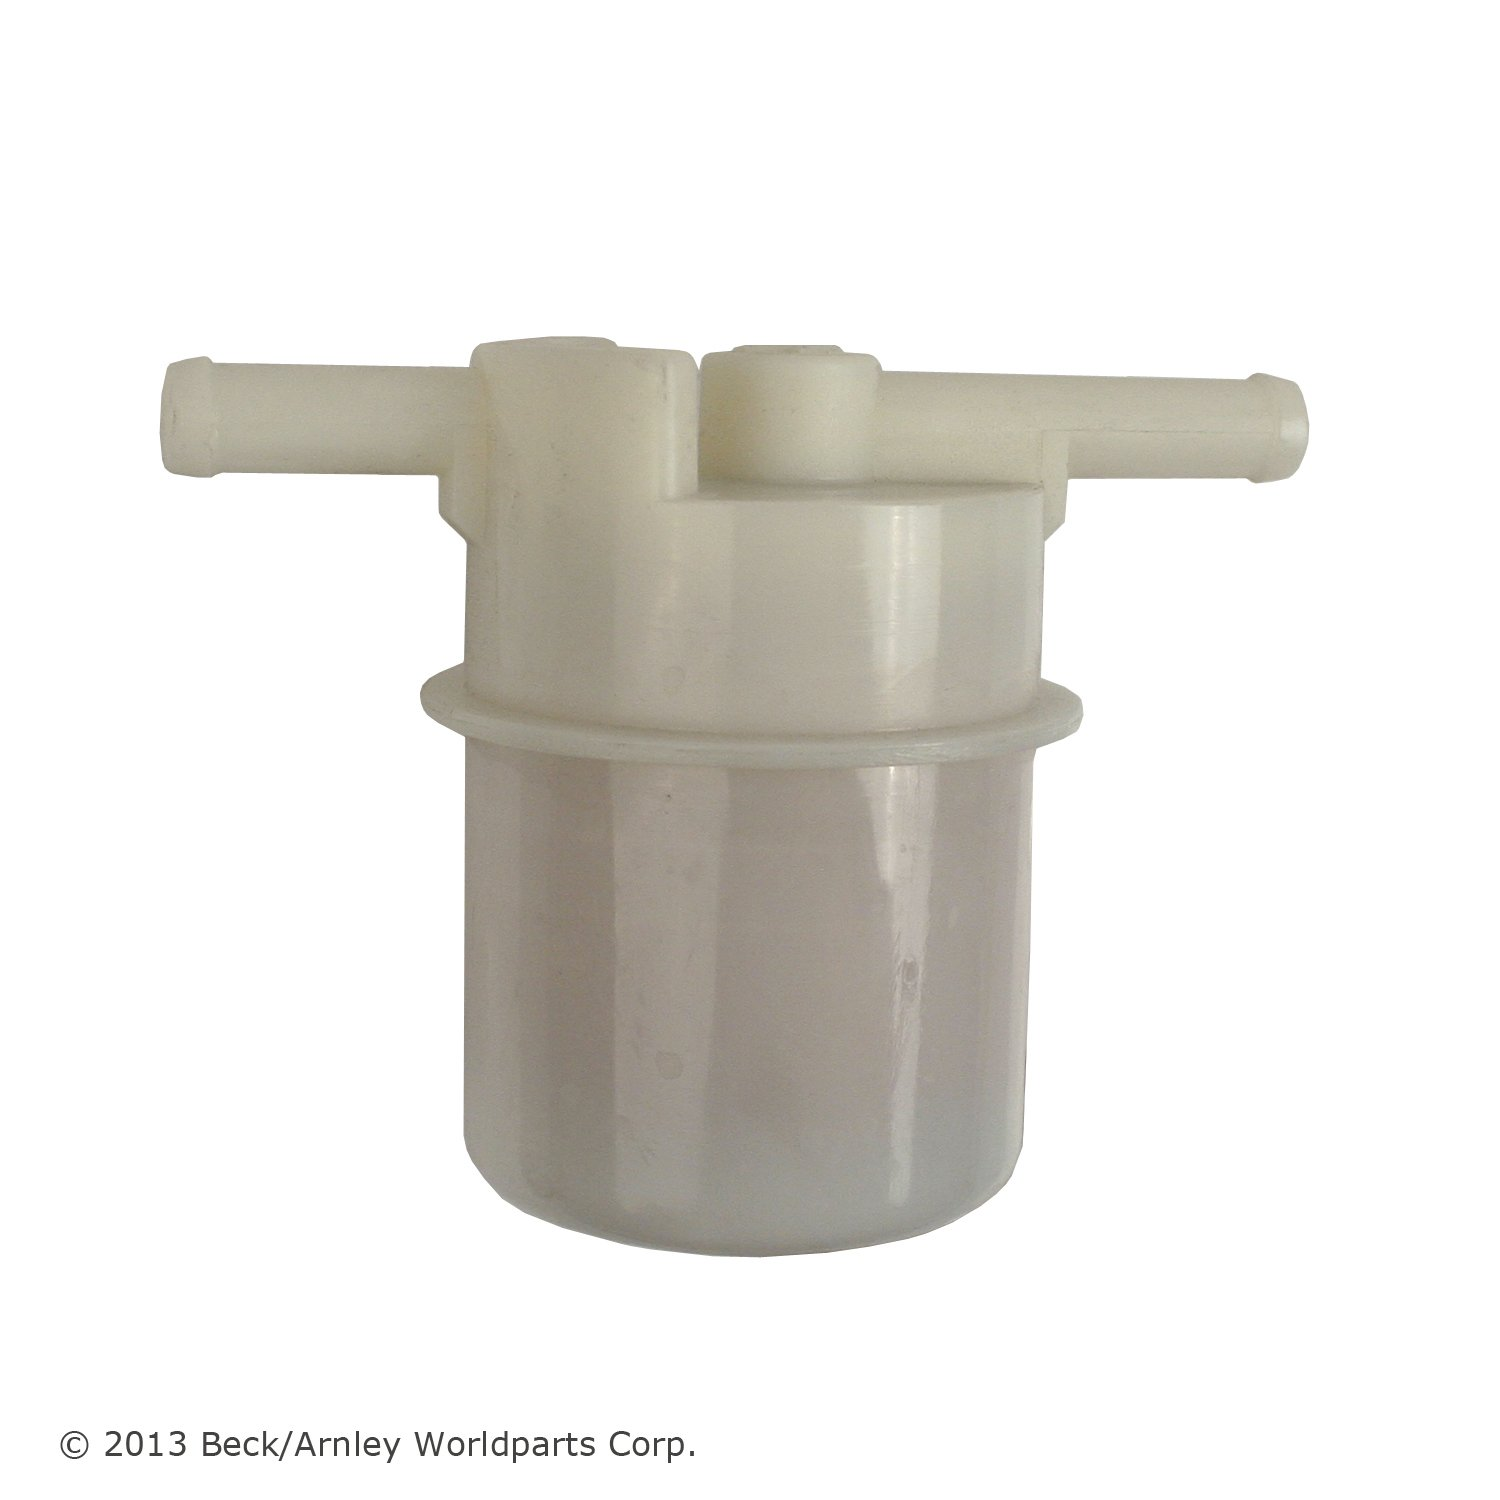 hight resolution of 1987 honda civic fuel filter ba 043 0825